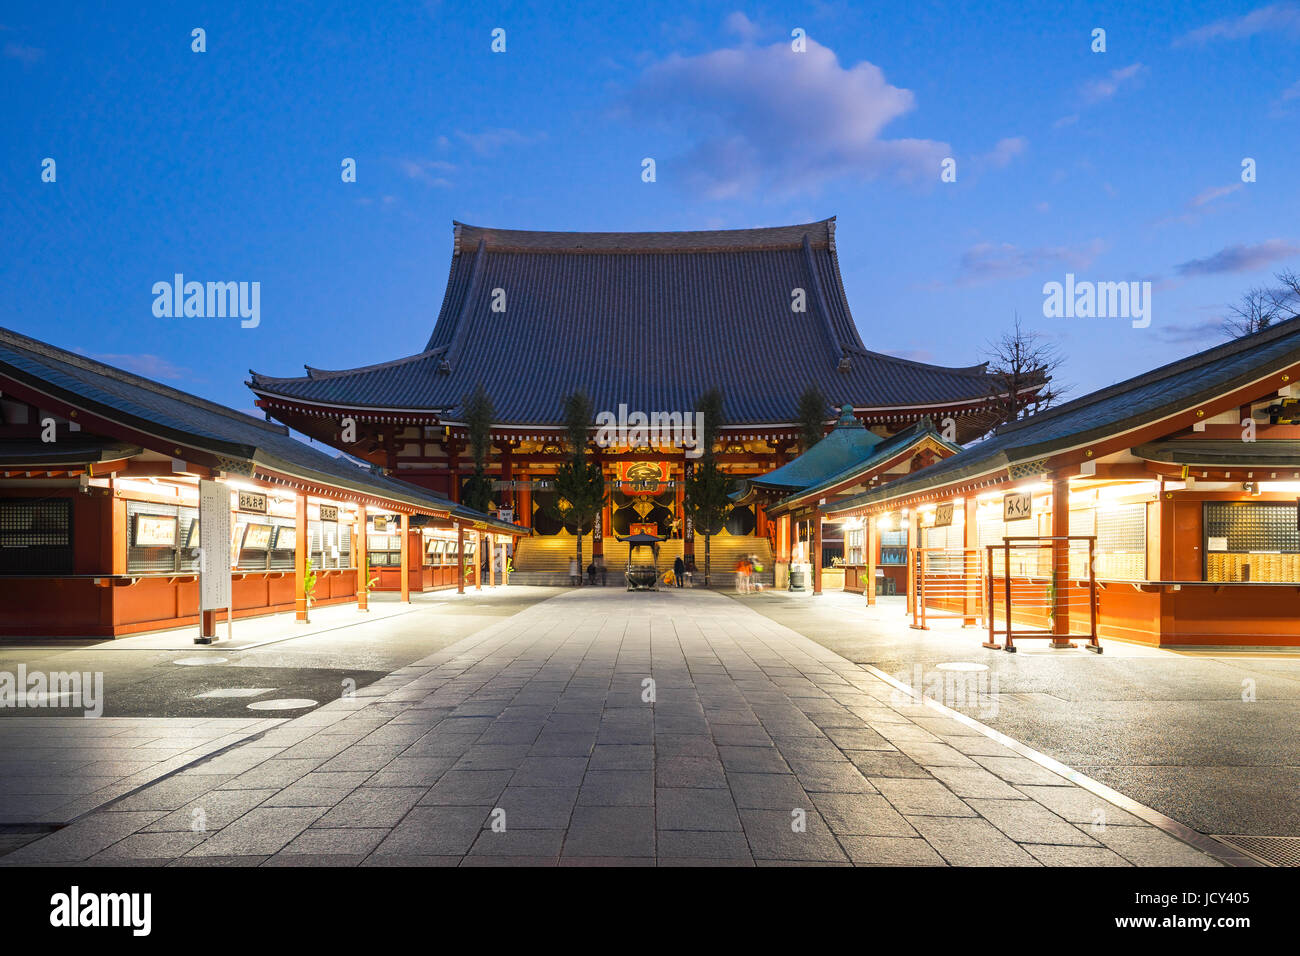 Tokyo, Japan - December 31, 2016: Sensoji is a Buddhist temple located in Asakusa. It is one of Tokyo's most - Stock Image